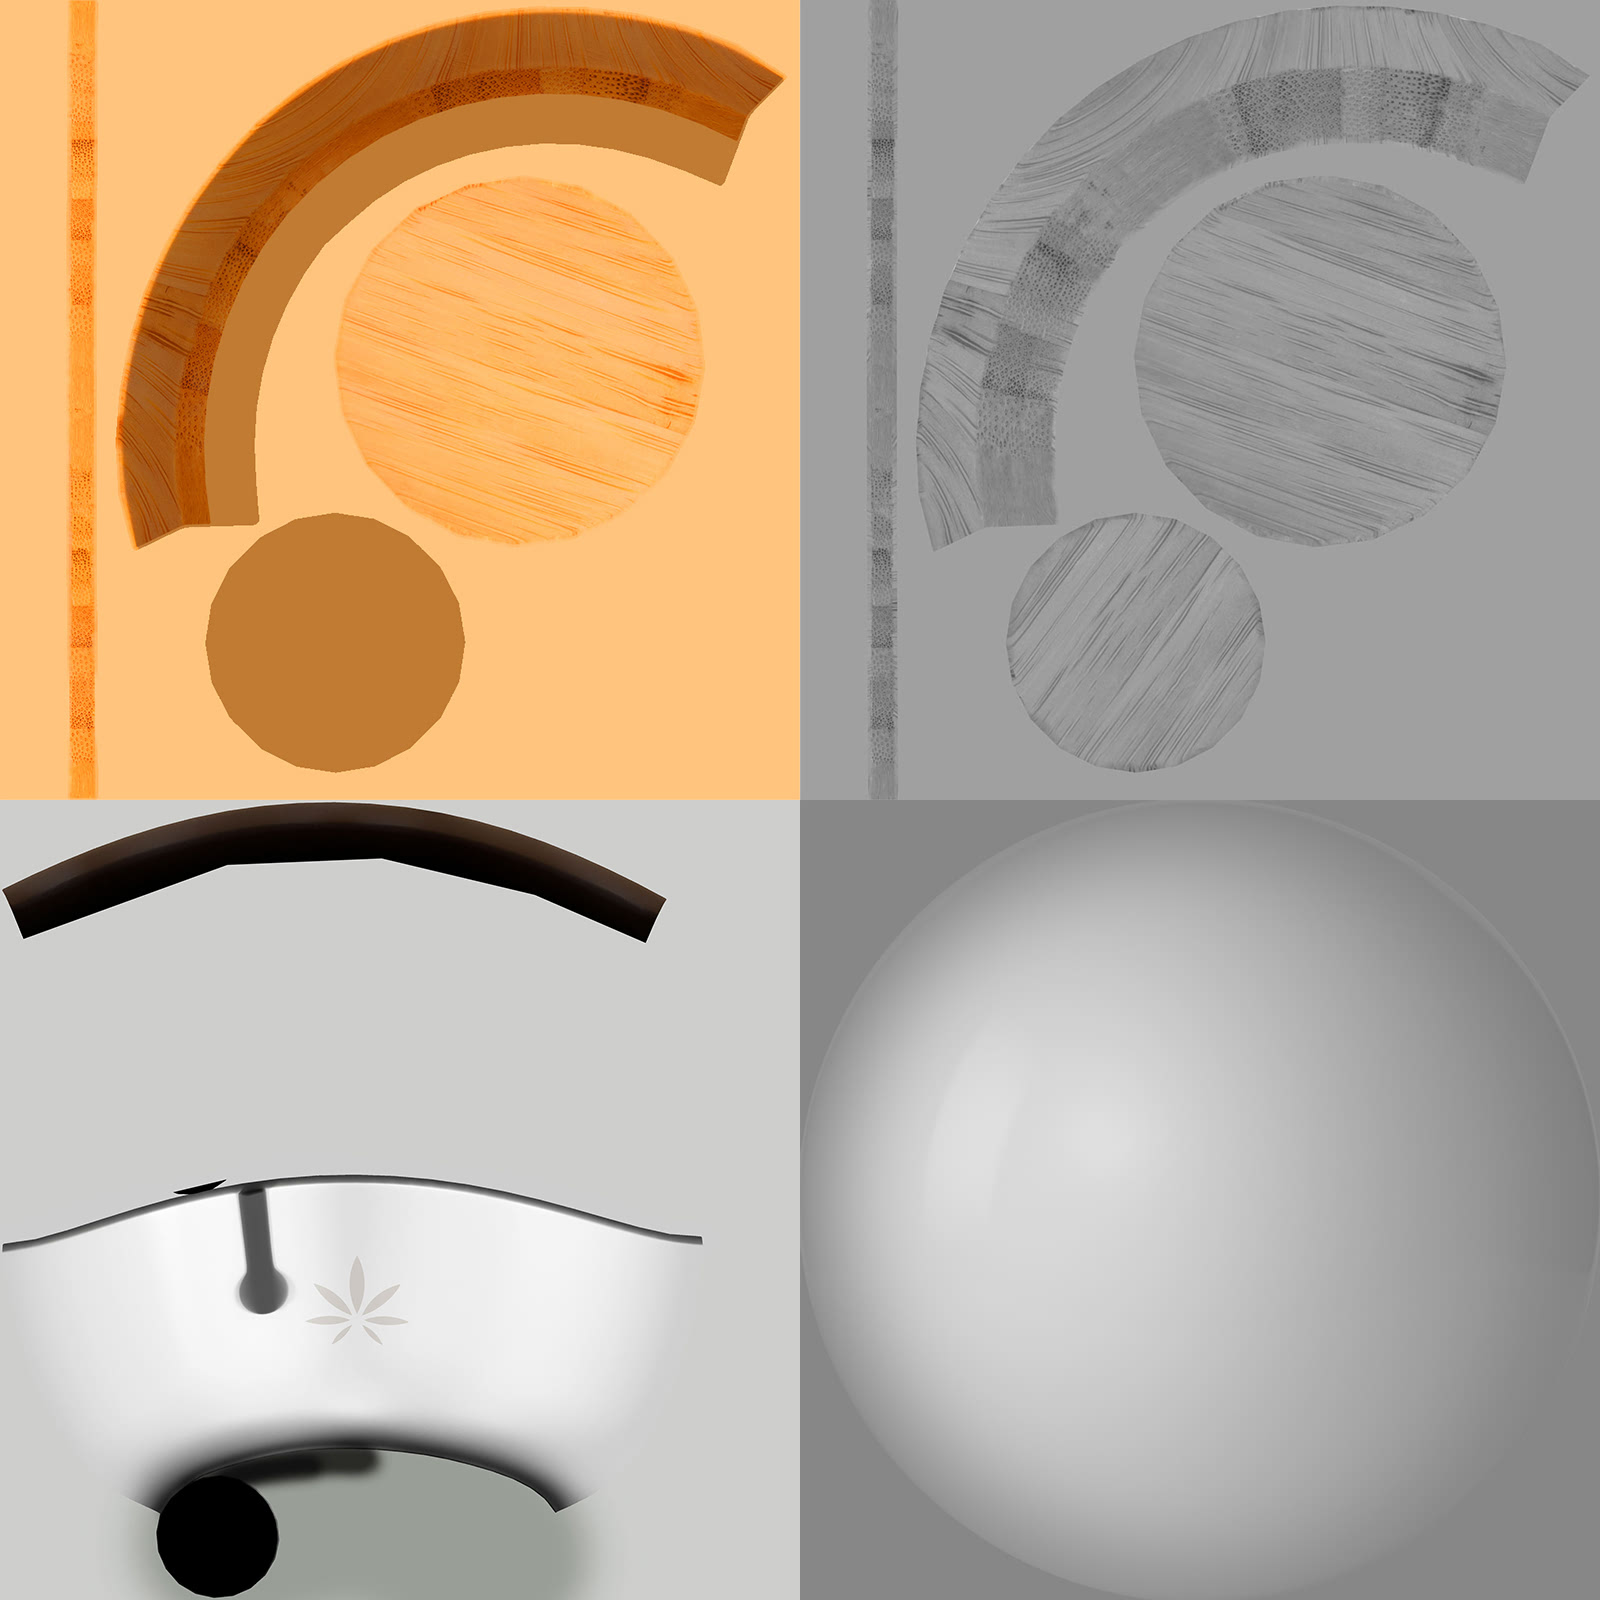 4 images of the different MA branded pots